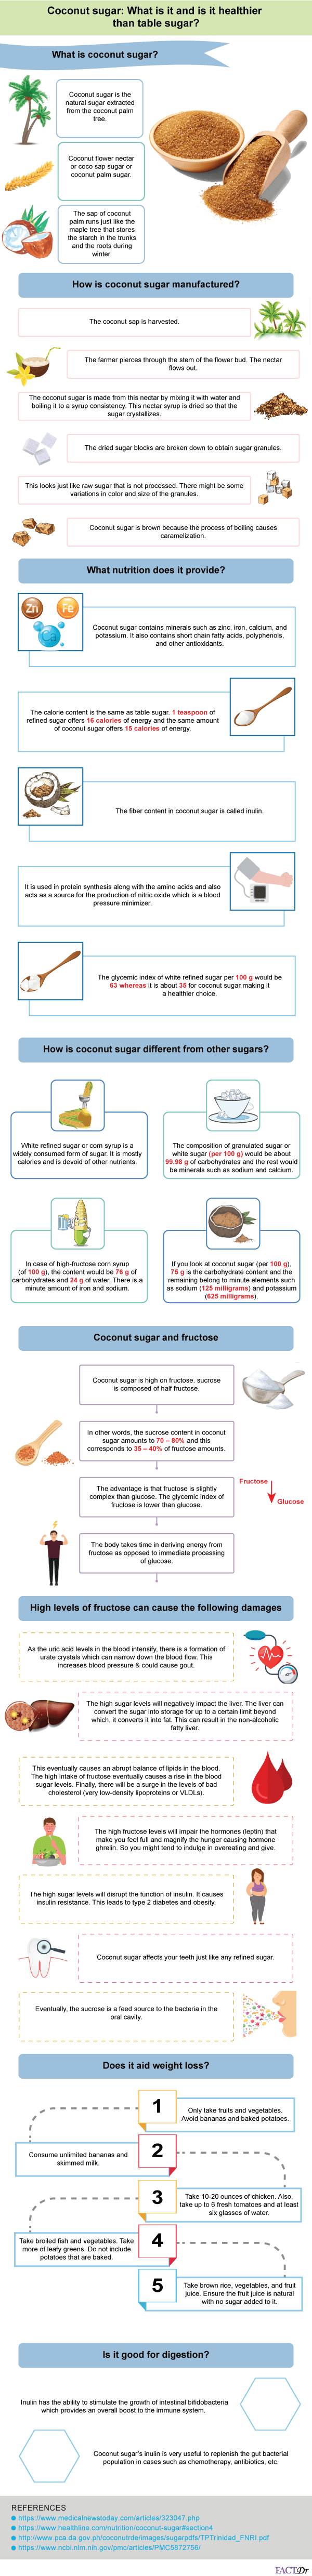 coconut sugar infographic